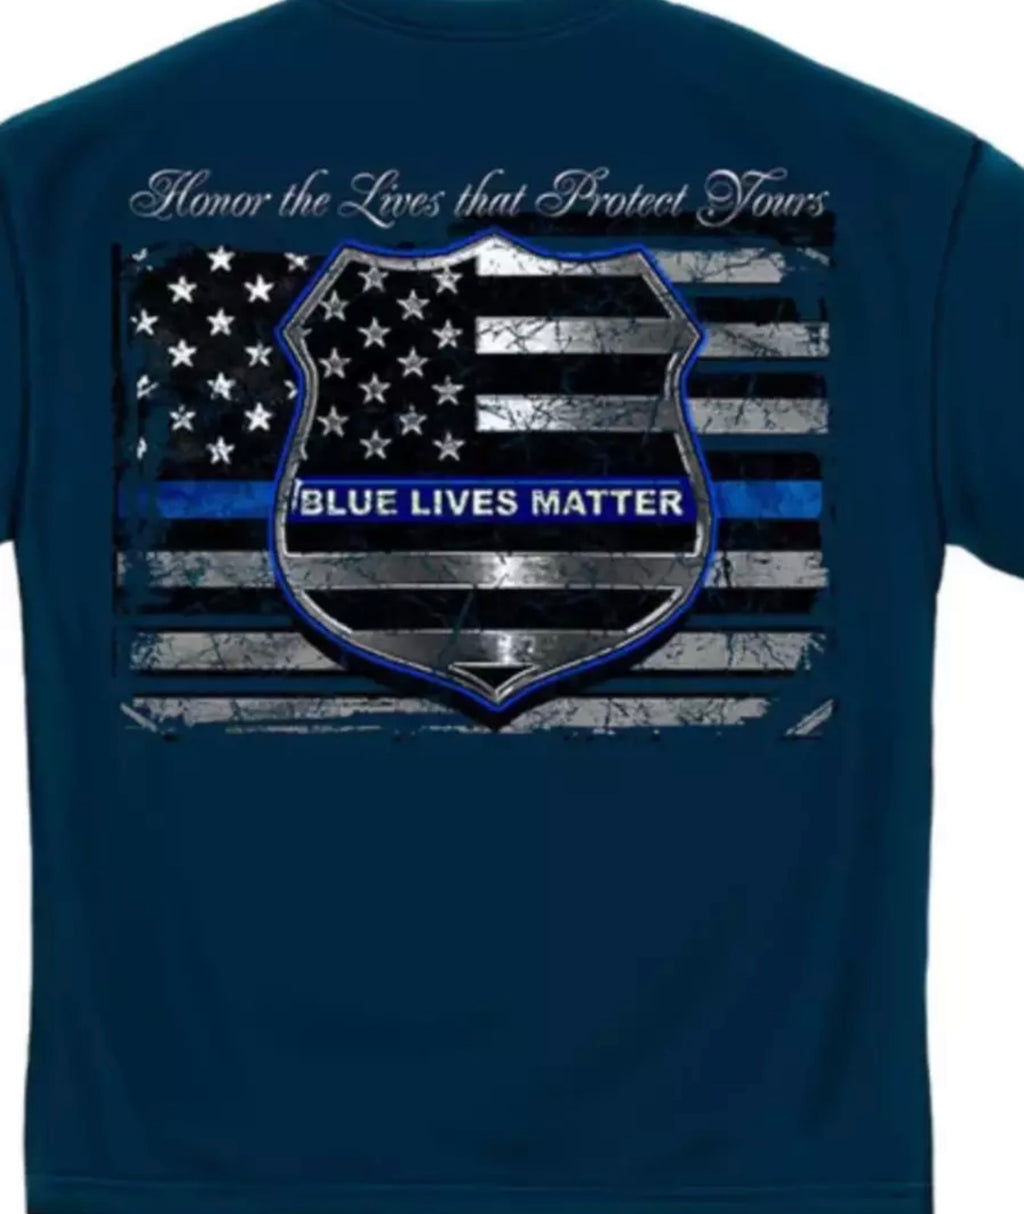 Blue Lives Matter Sweat Shirt - The Wall Kids, Inc.